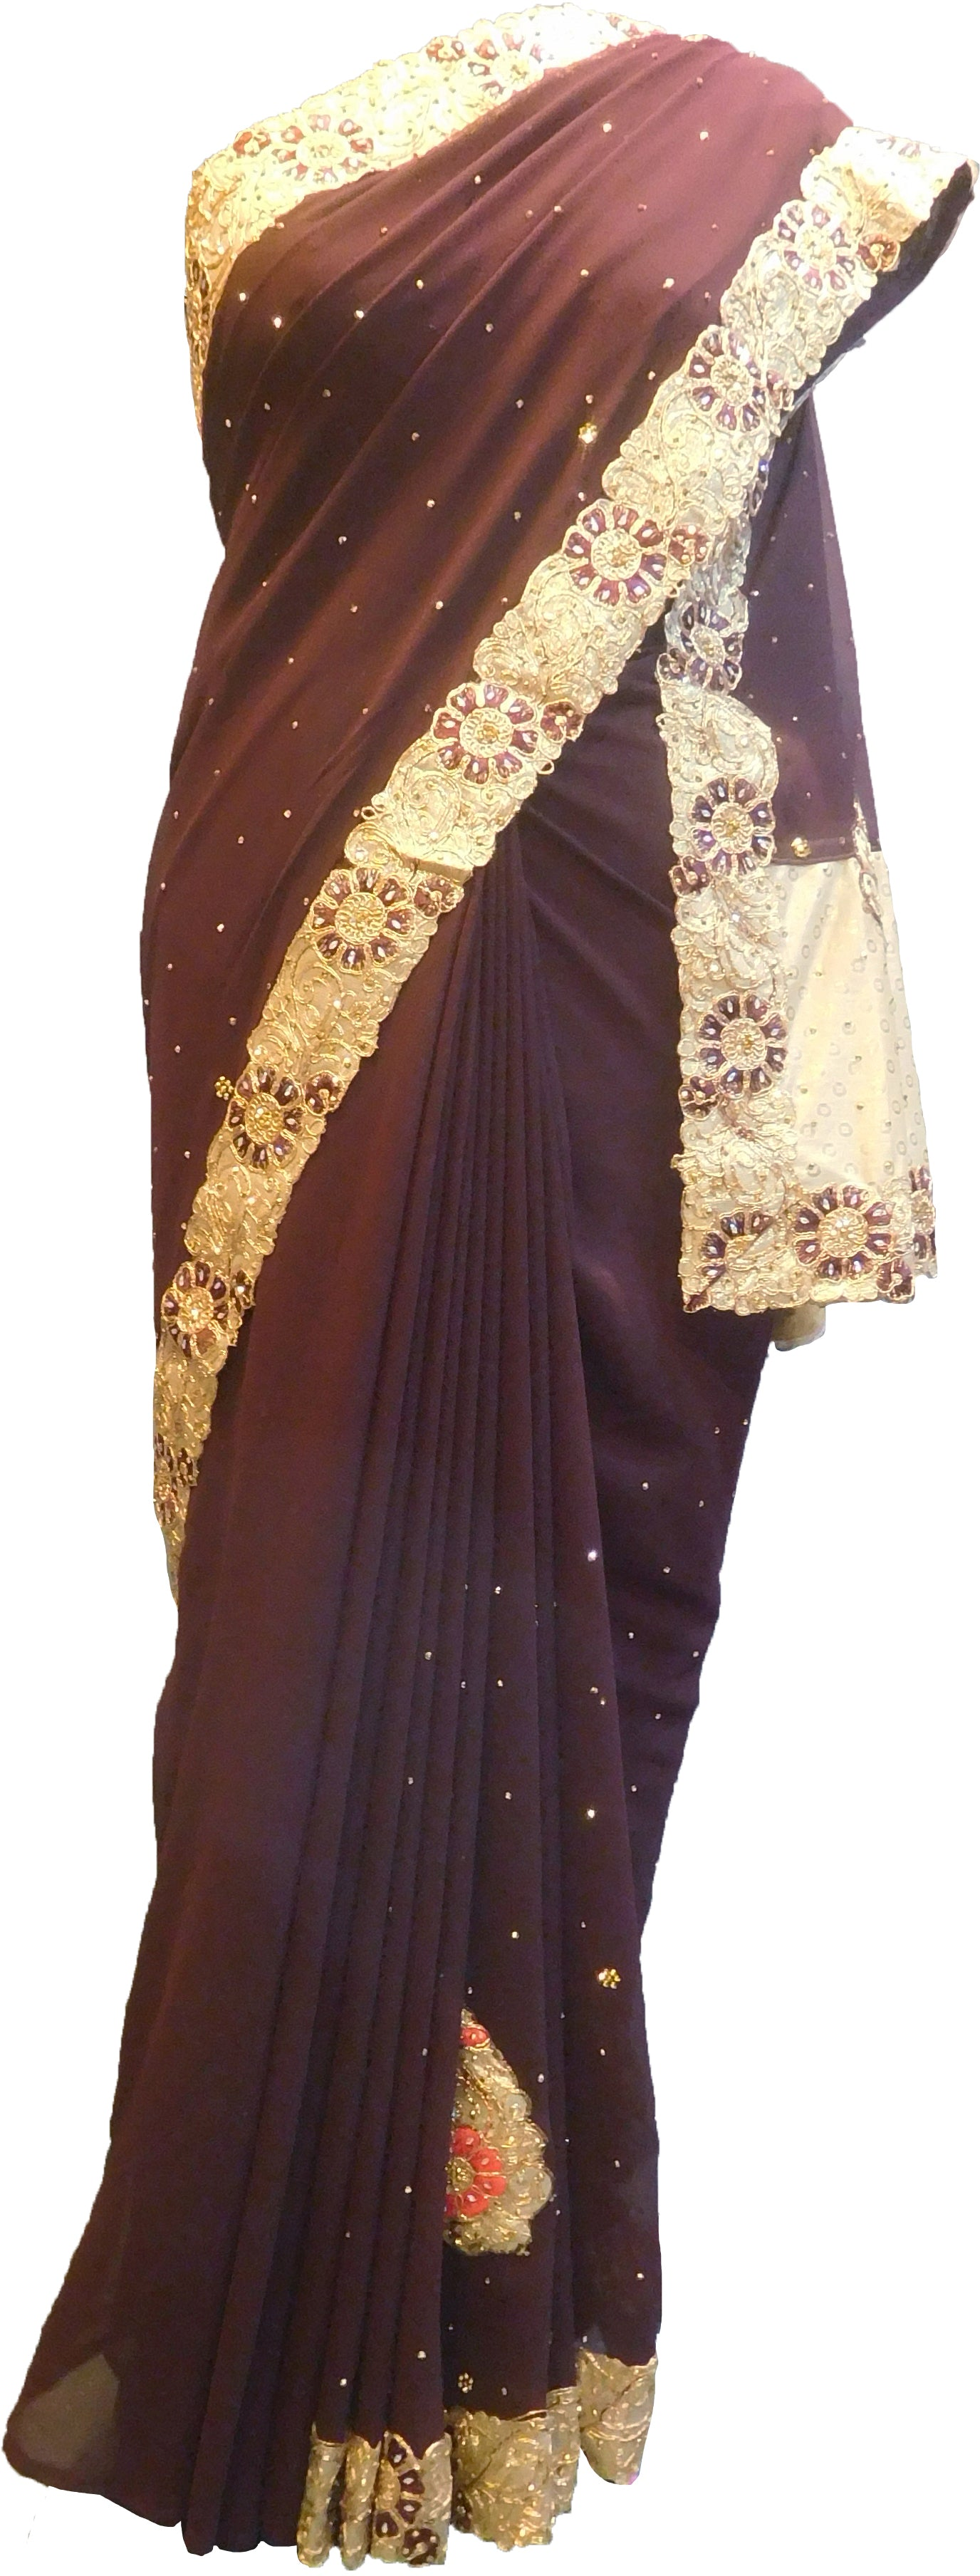 SMSAREE Coffee Brown Designer Wedding Partywear Georgette Stone Thread & Zari Hand Embroidery Work Bridal Saree Sari With Blouse Piece F409